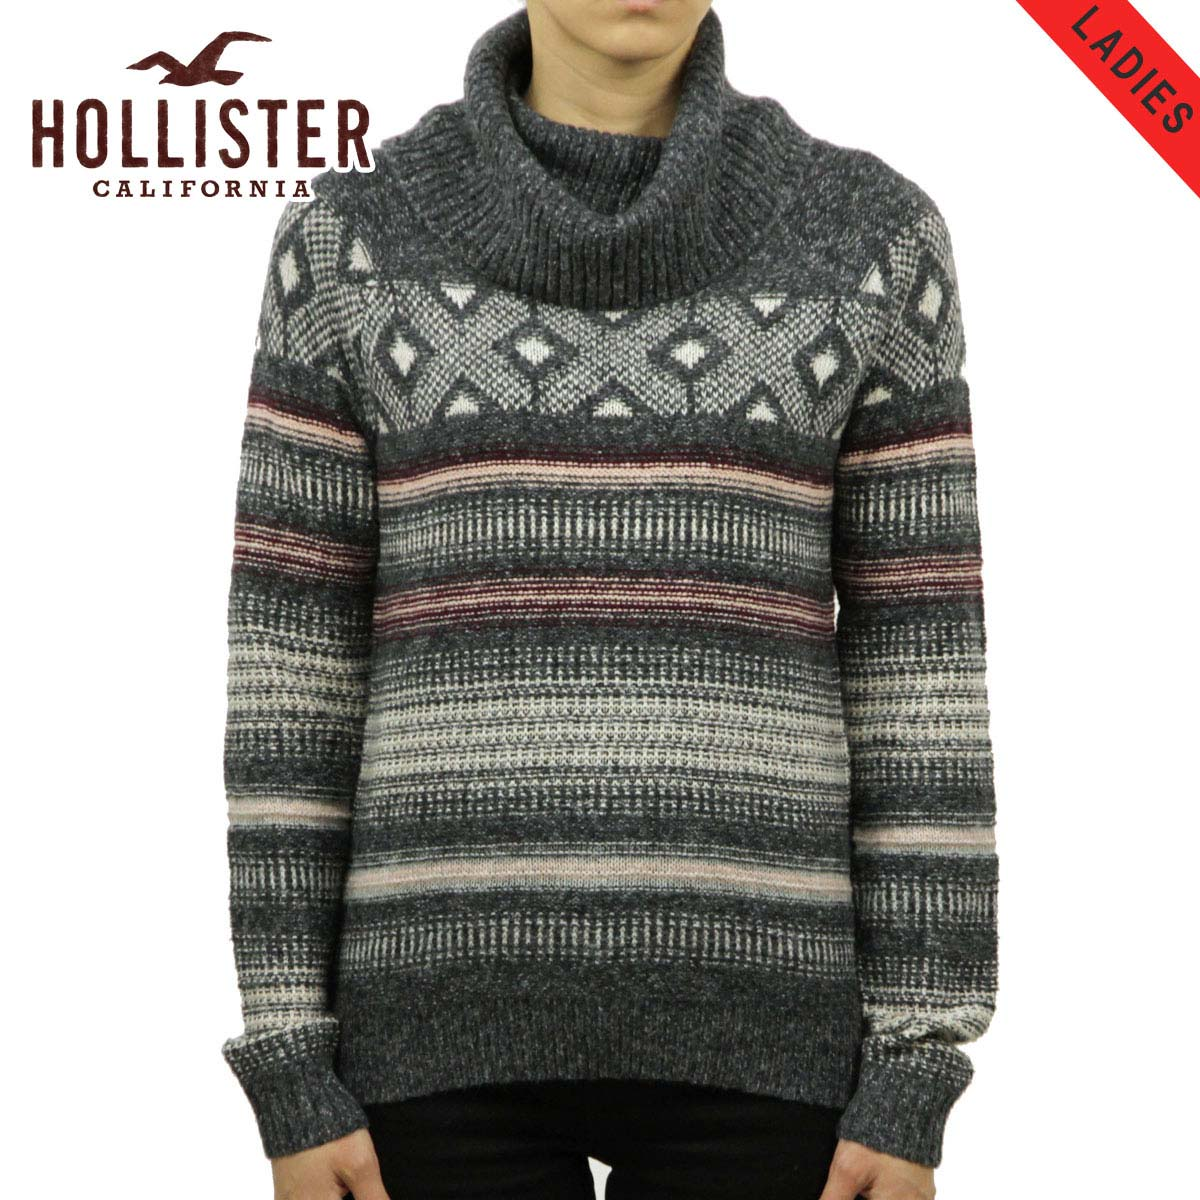 179bb2e45beb Hollister HOLLISTER AE women s sweater Patterned Cowl Neck Sweater  350-507-0558-116